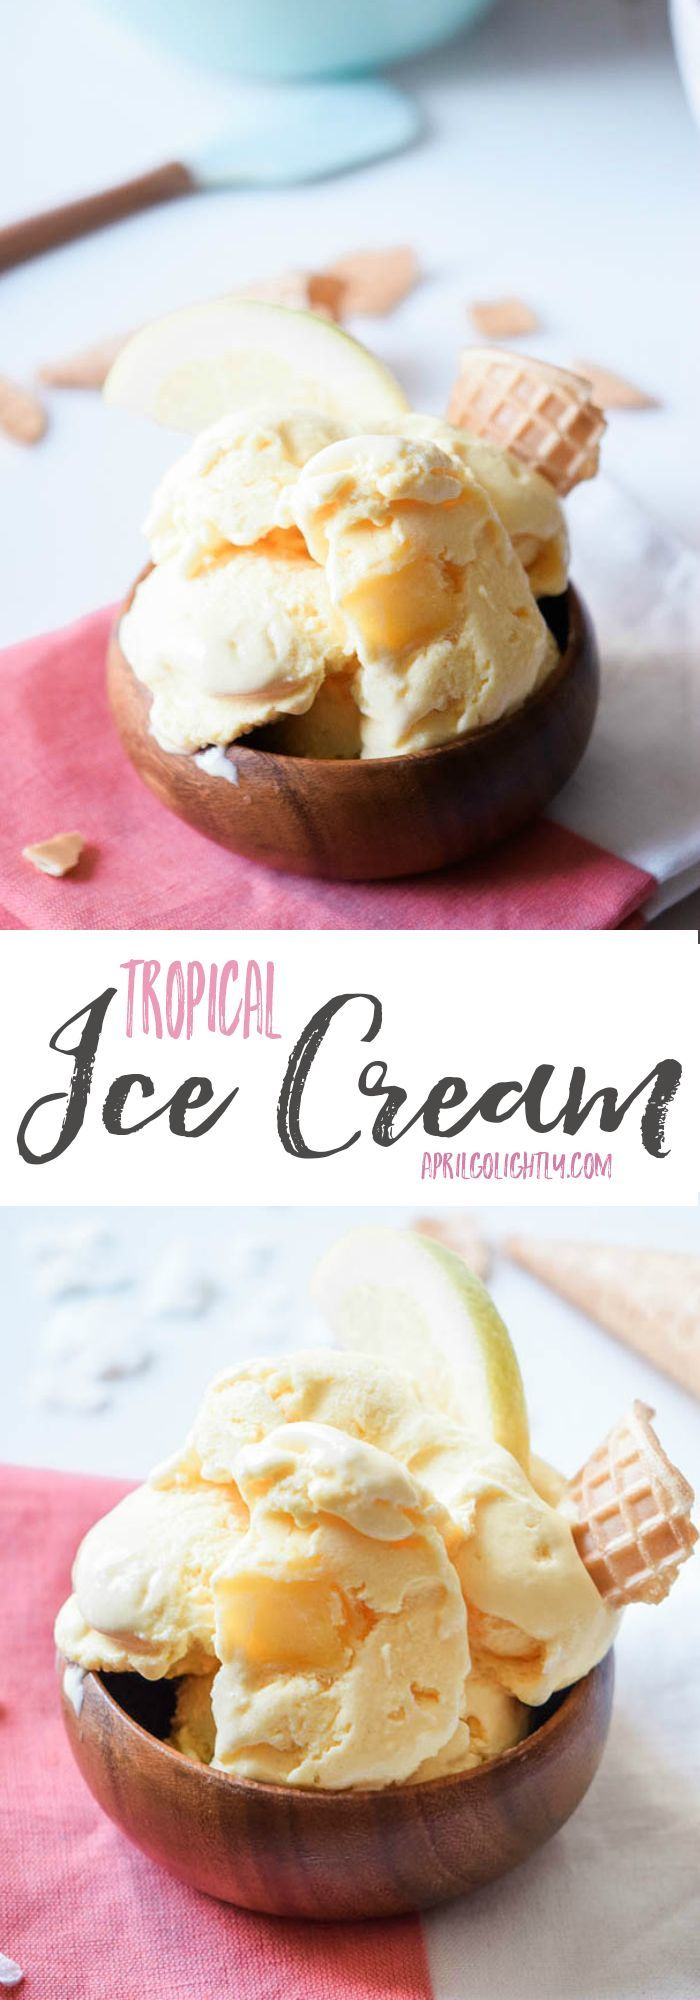 Easy Homemade Vegan Tropical Creamy Ice Cream Recipe with coconut milk using an ice cream maker machine - extremely healthy perfect for kids and adults